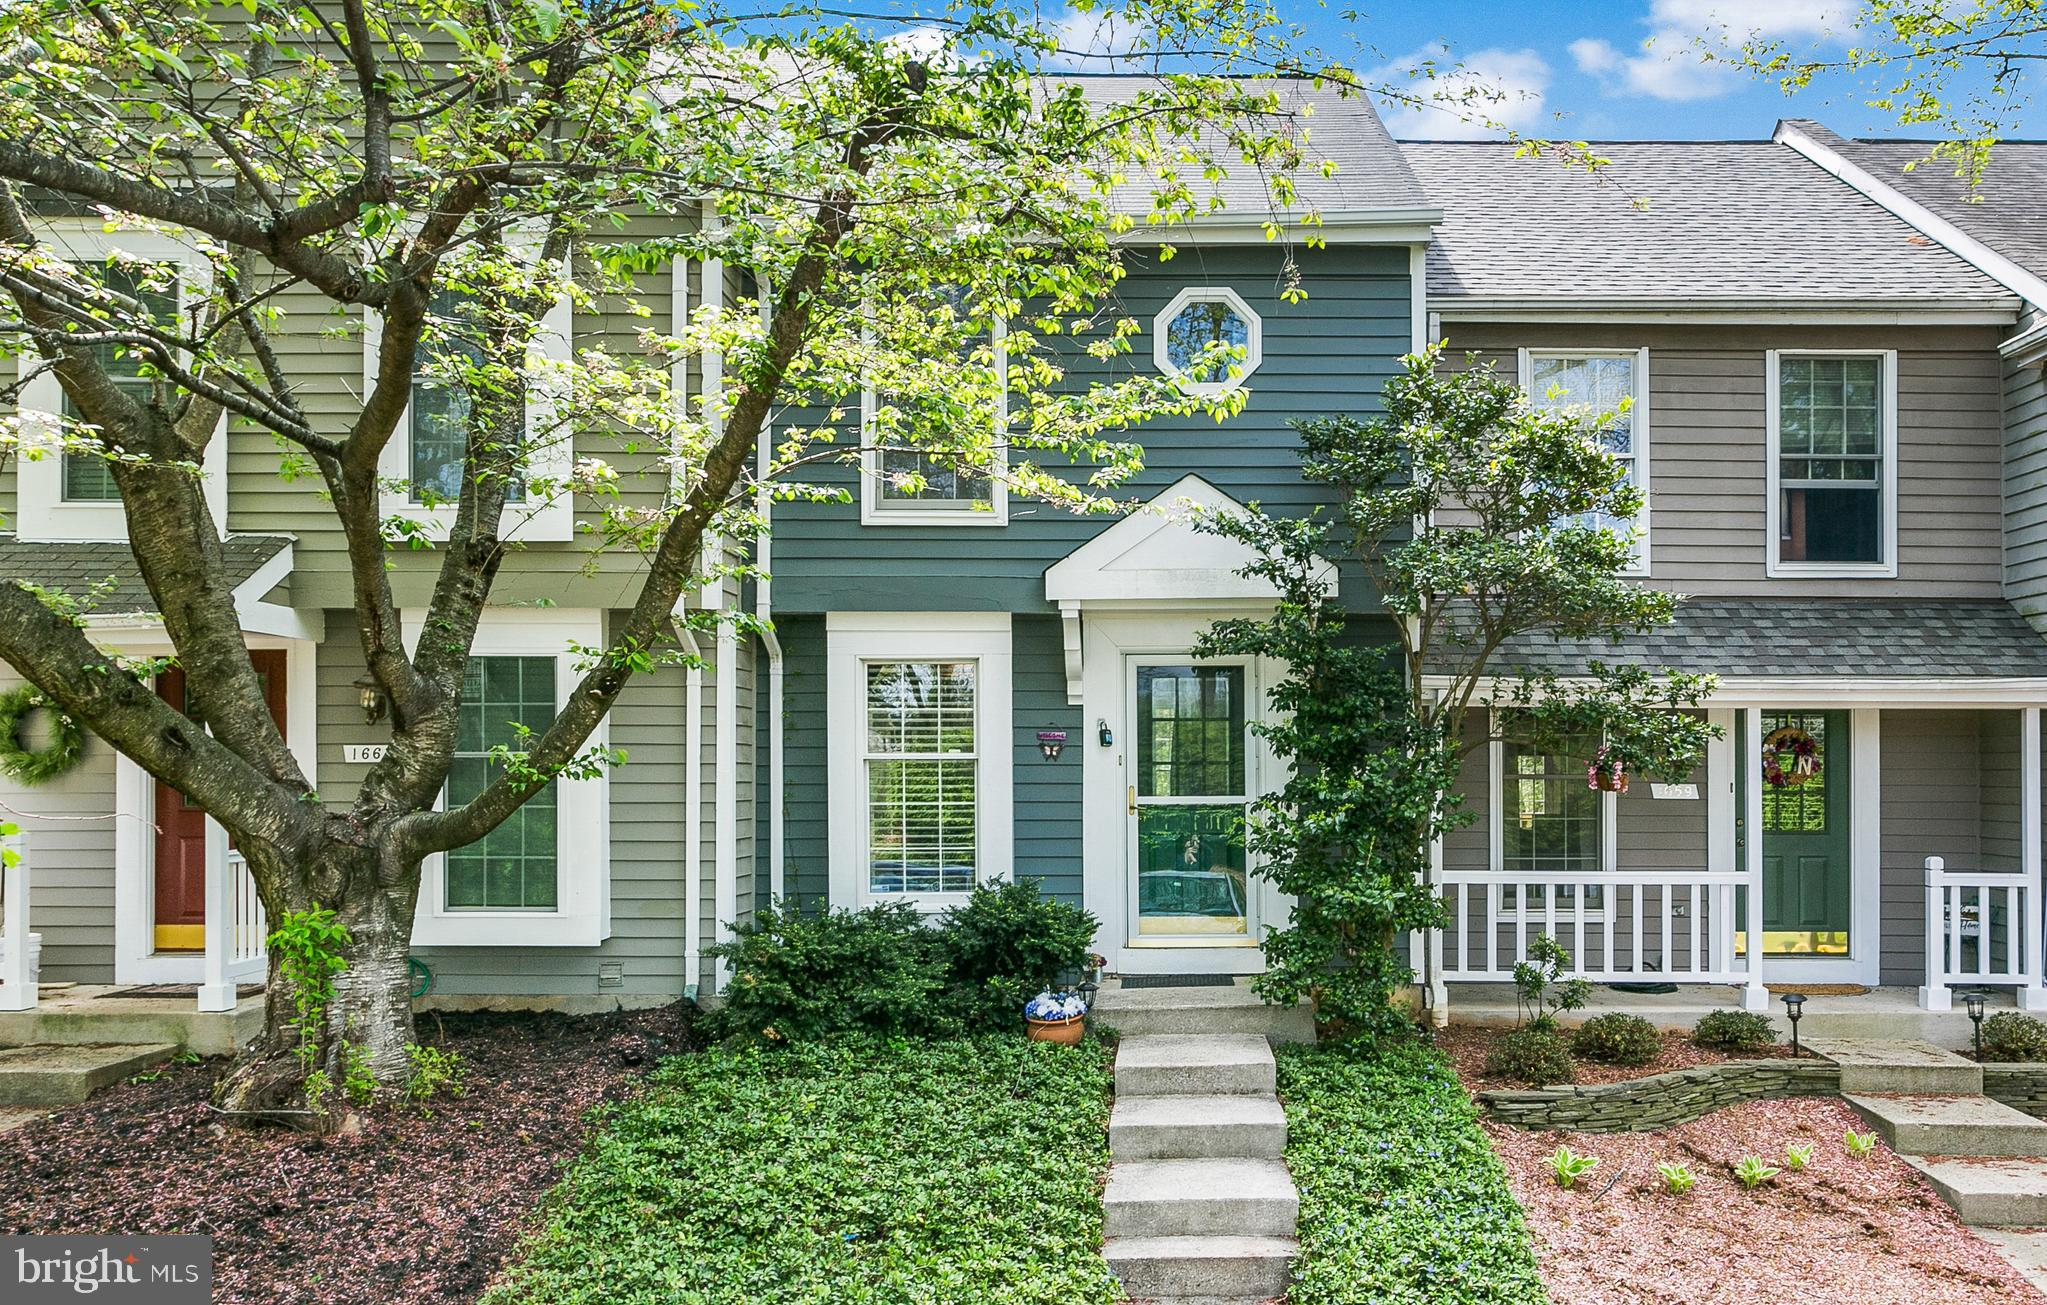 Renovated 2 bed/1.5 bath townhome in Reston! Updated wood floors, updated kitchen with nice open concept living & dining. Finished 4th floor storage space with pull down steps. Lower level family room with wood-burning fireplace and walkout to private patio! Backs to trees! Minutes from all of Reston's amenities and restaurants, FX county Pkwy & Dulles toll road, Reston metro! Don't miss it!